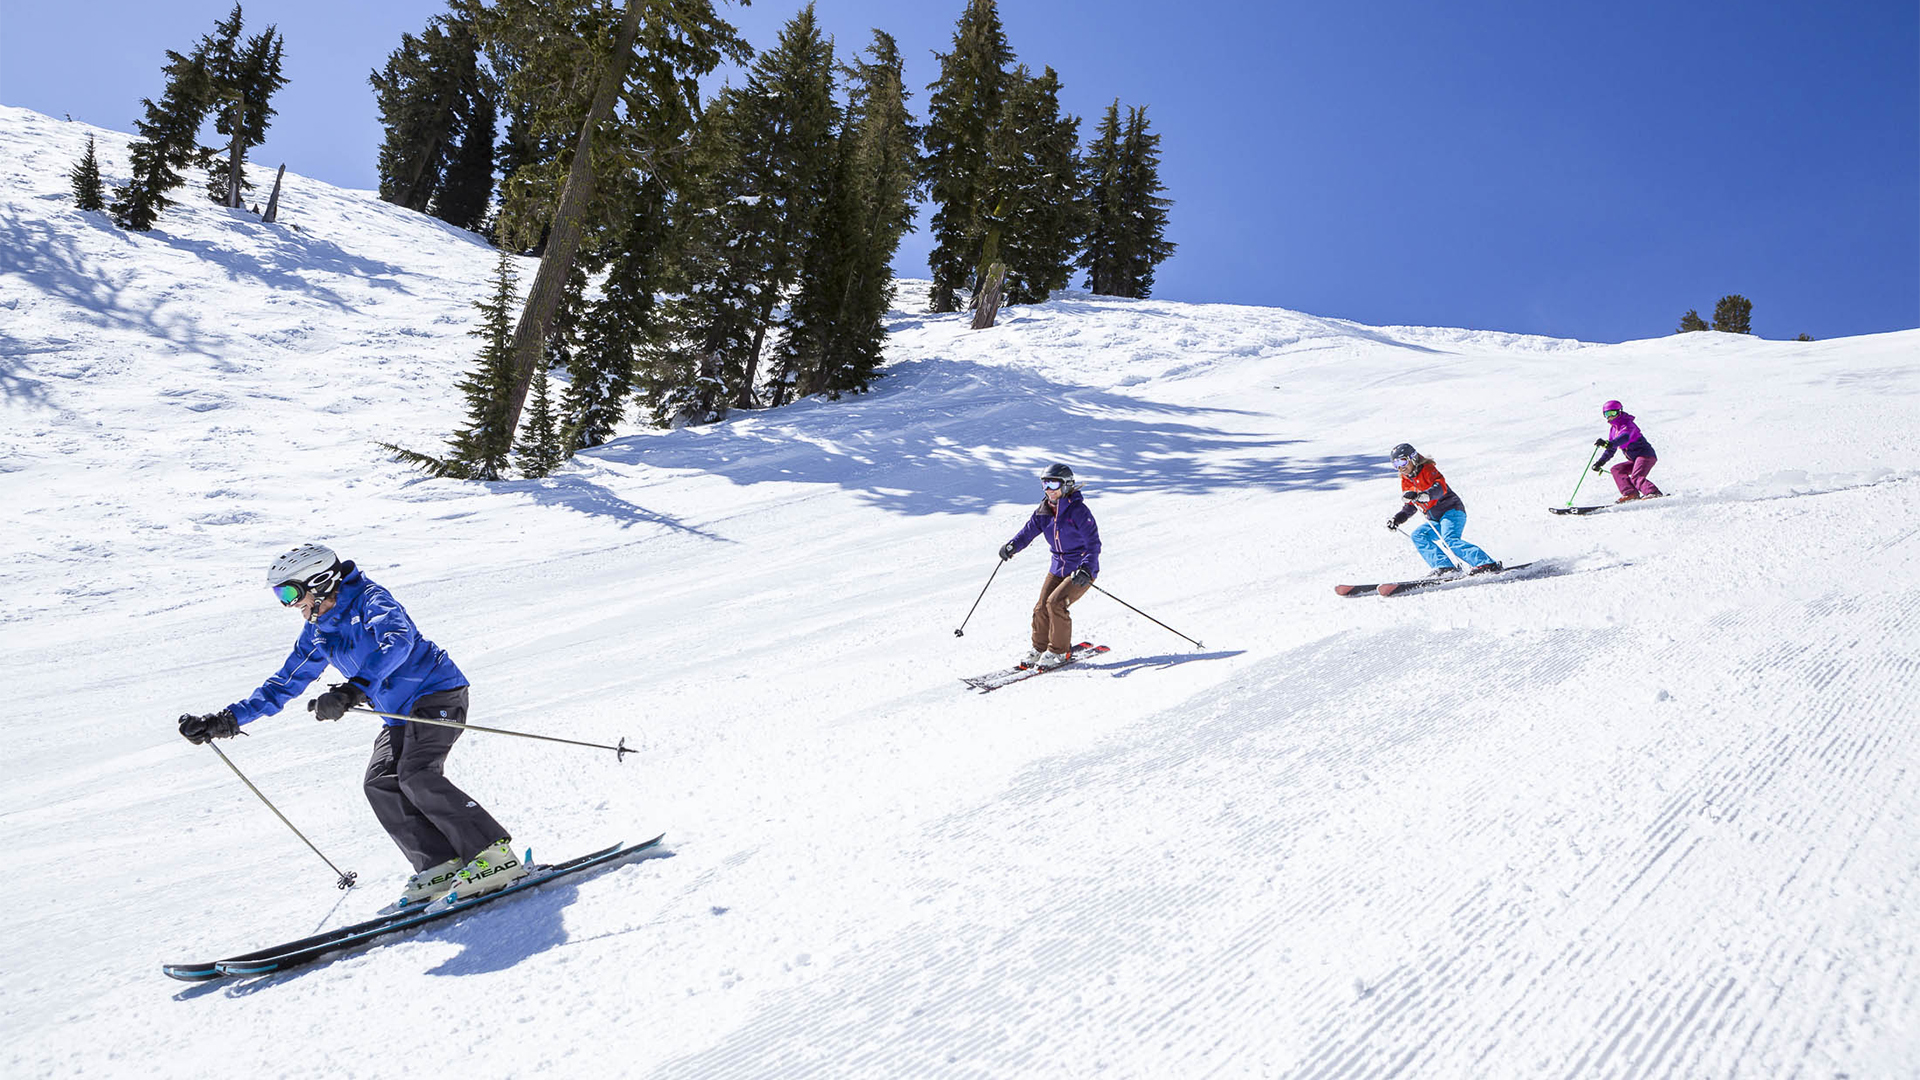 Making turns on  the slopes